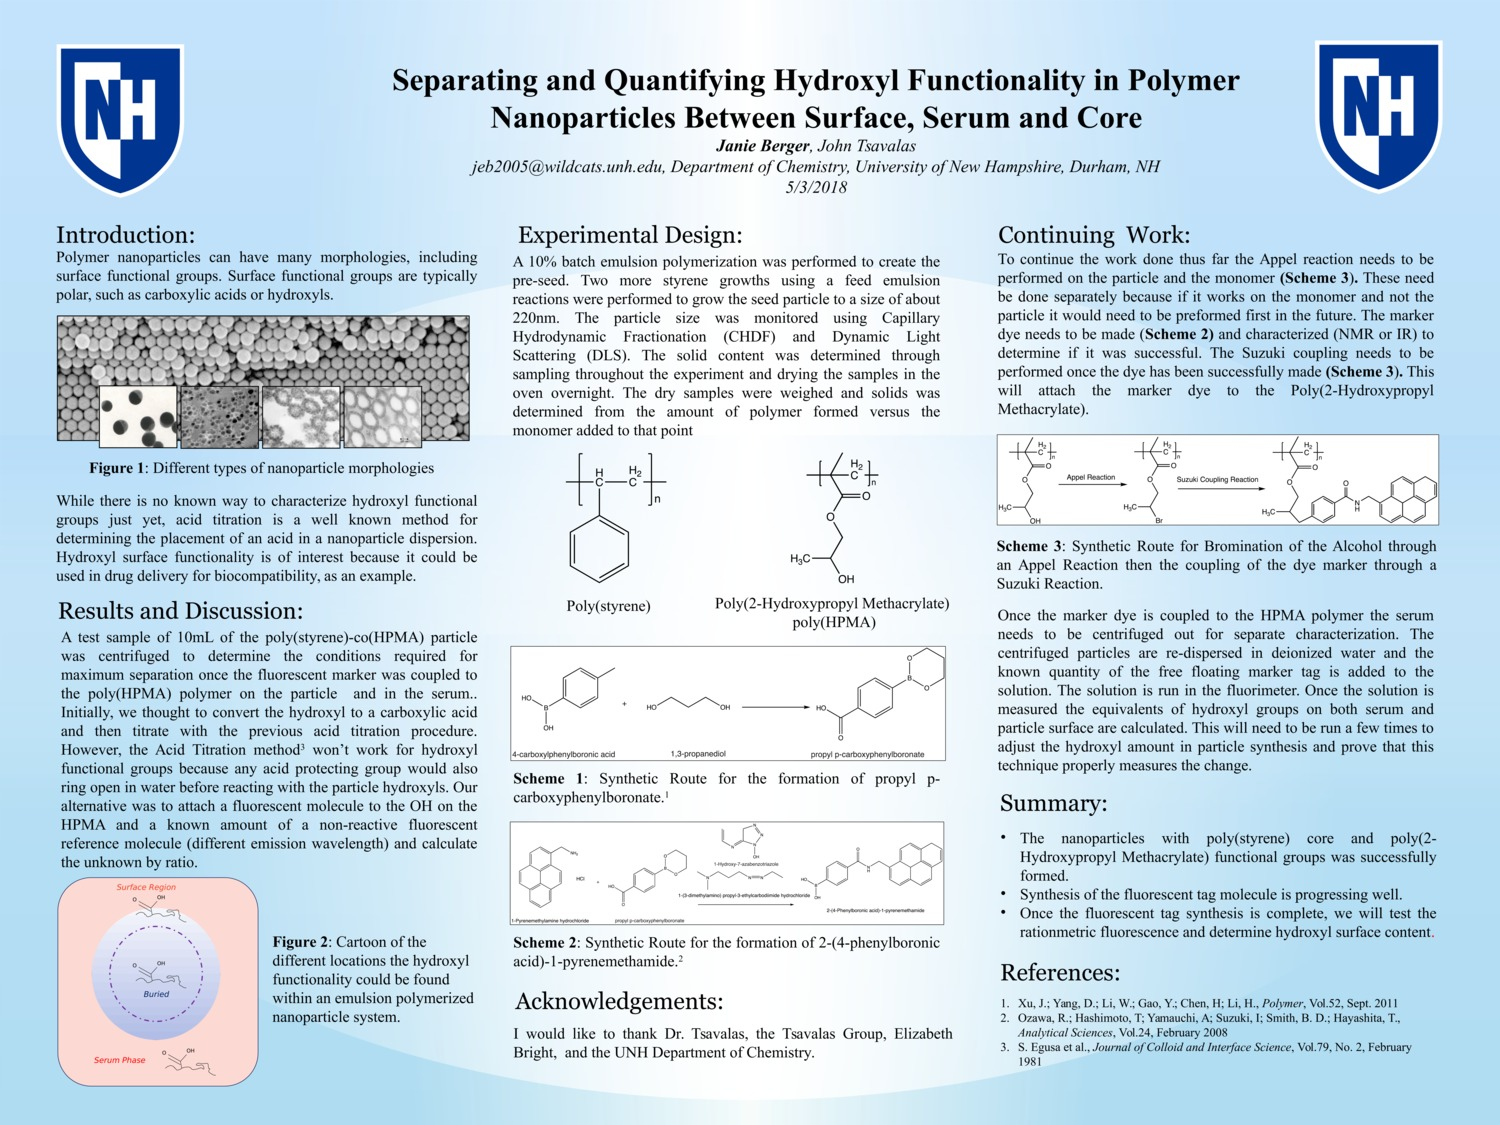 Separating And Quantifying Hydroxyl Functionality In Polymer Nanoparticles Between Surface, Serum And Core by jeb2005